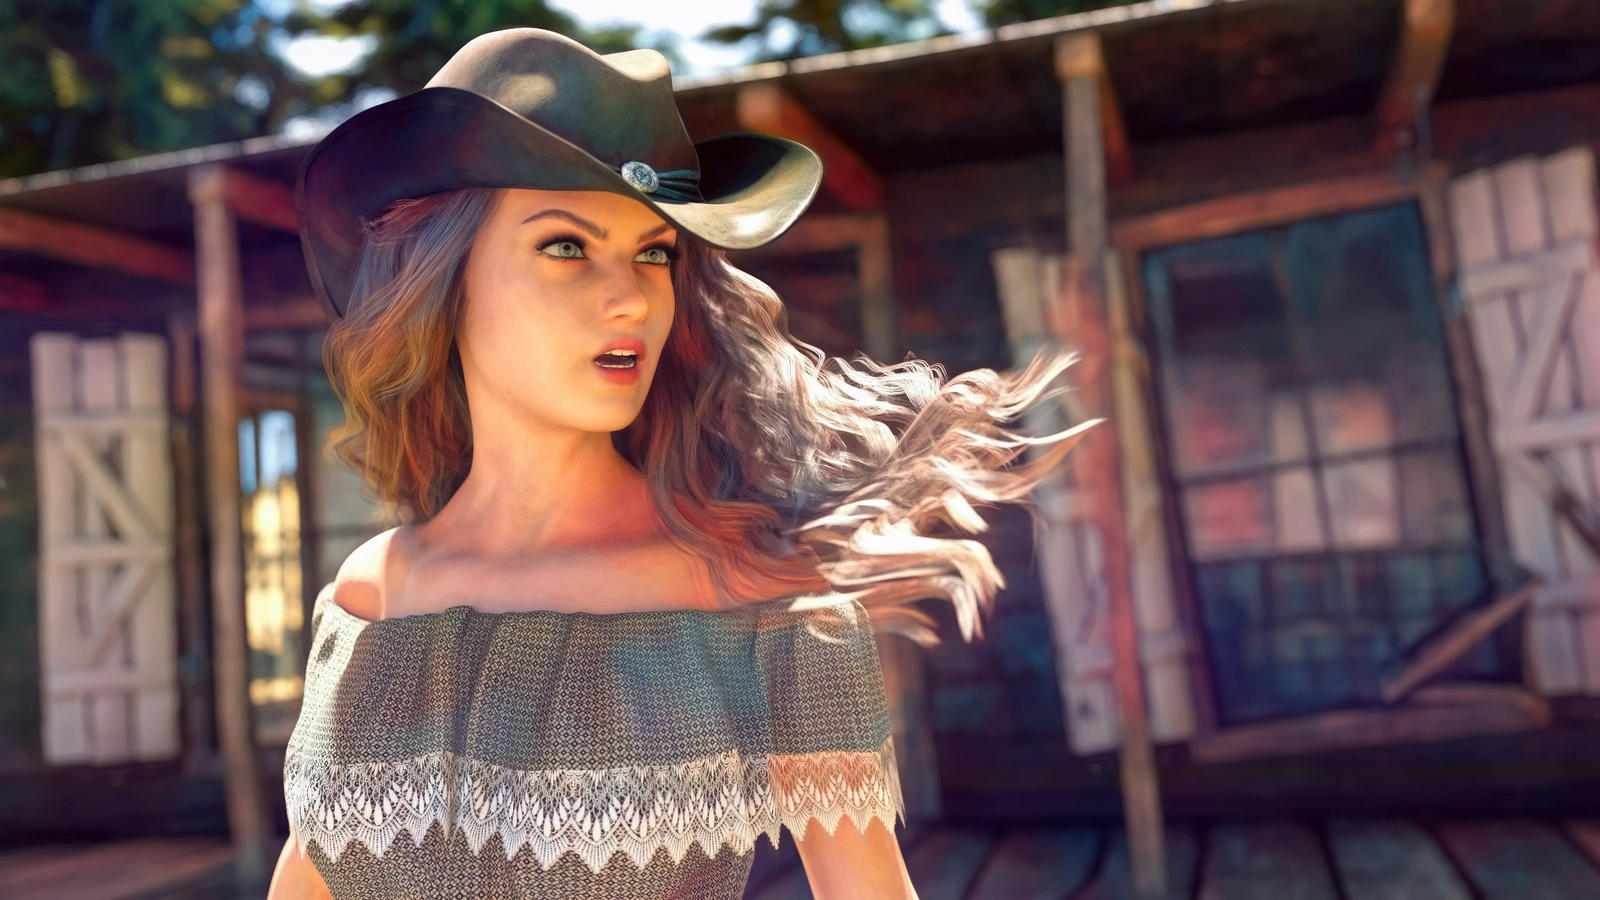 sexy cowgirl photo gallery